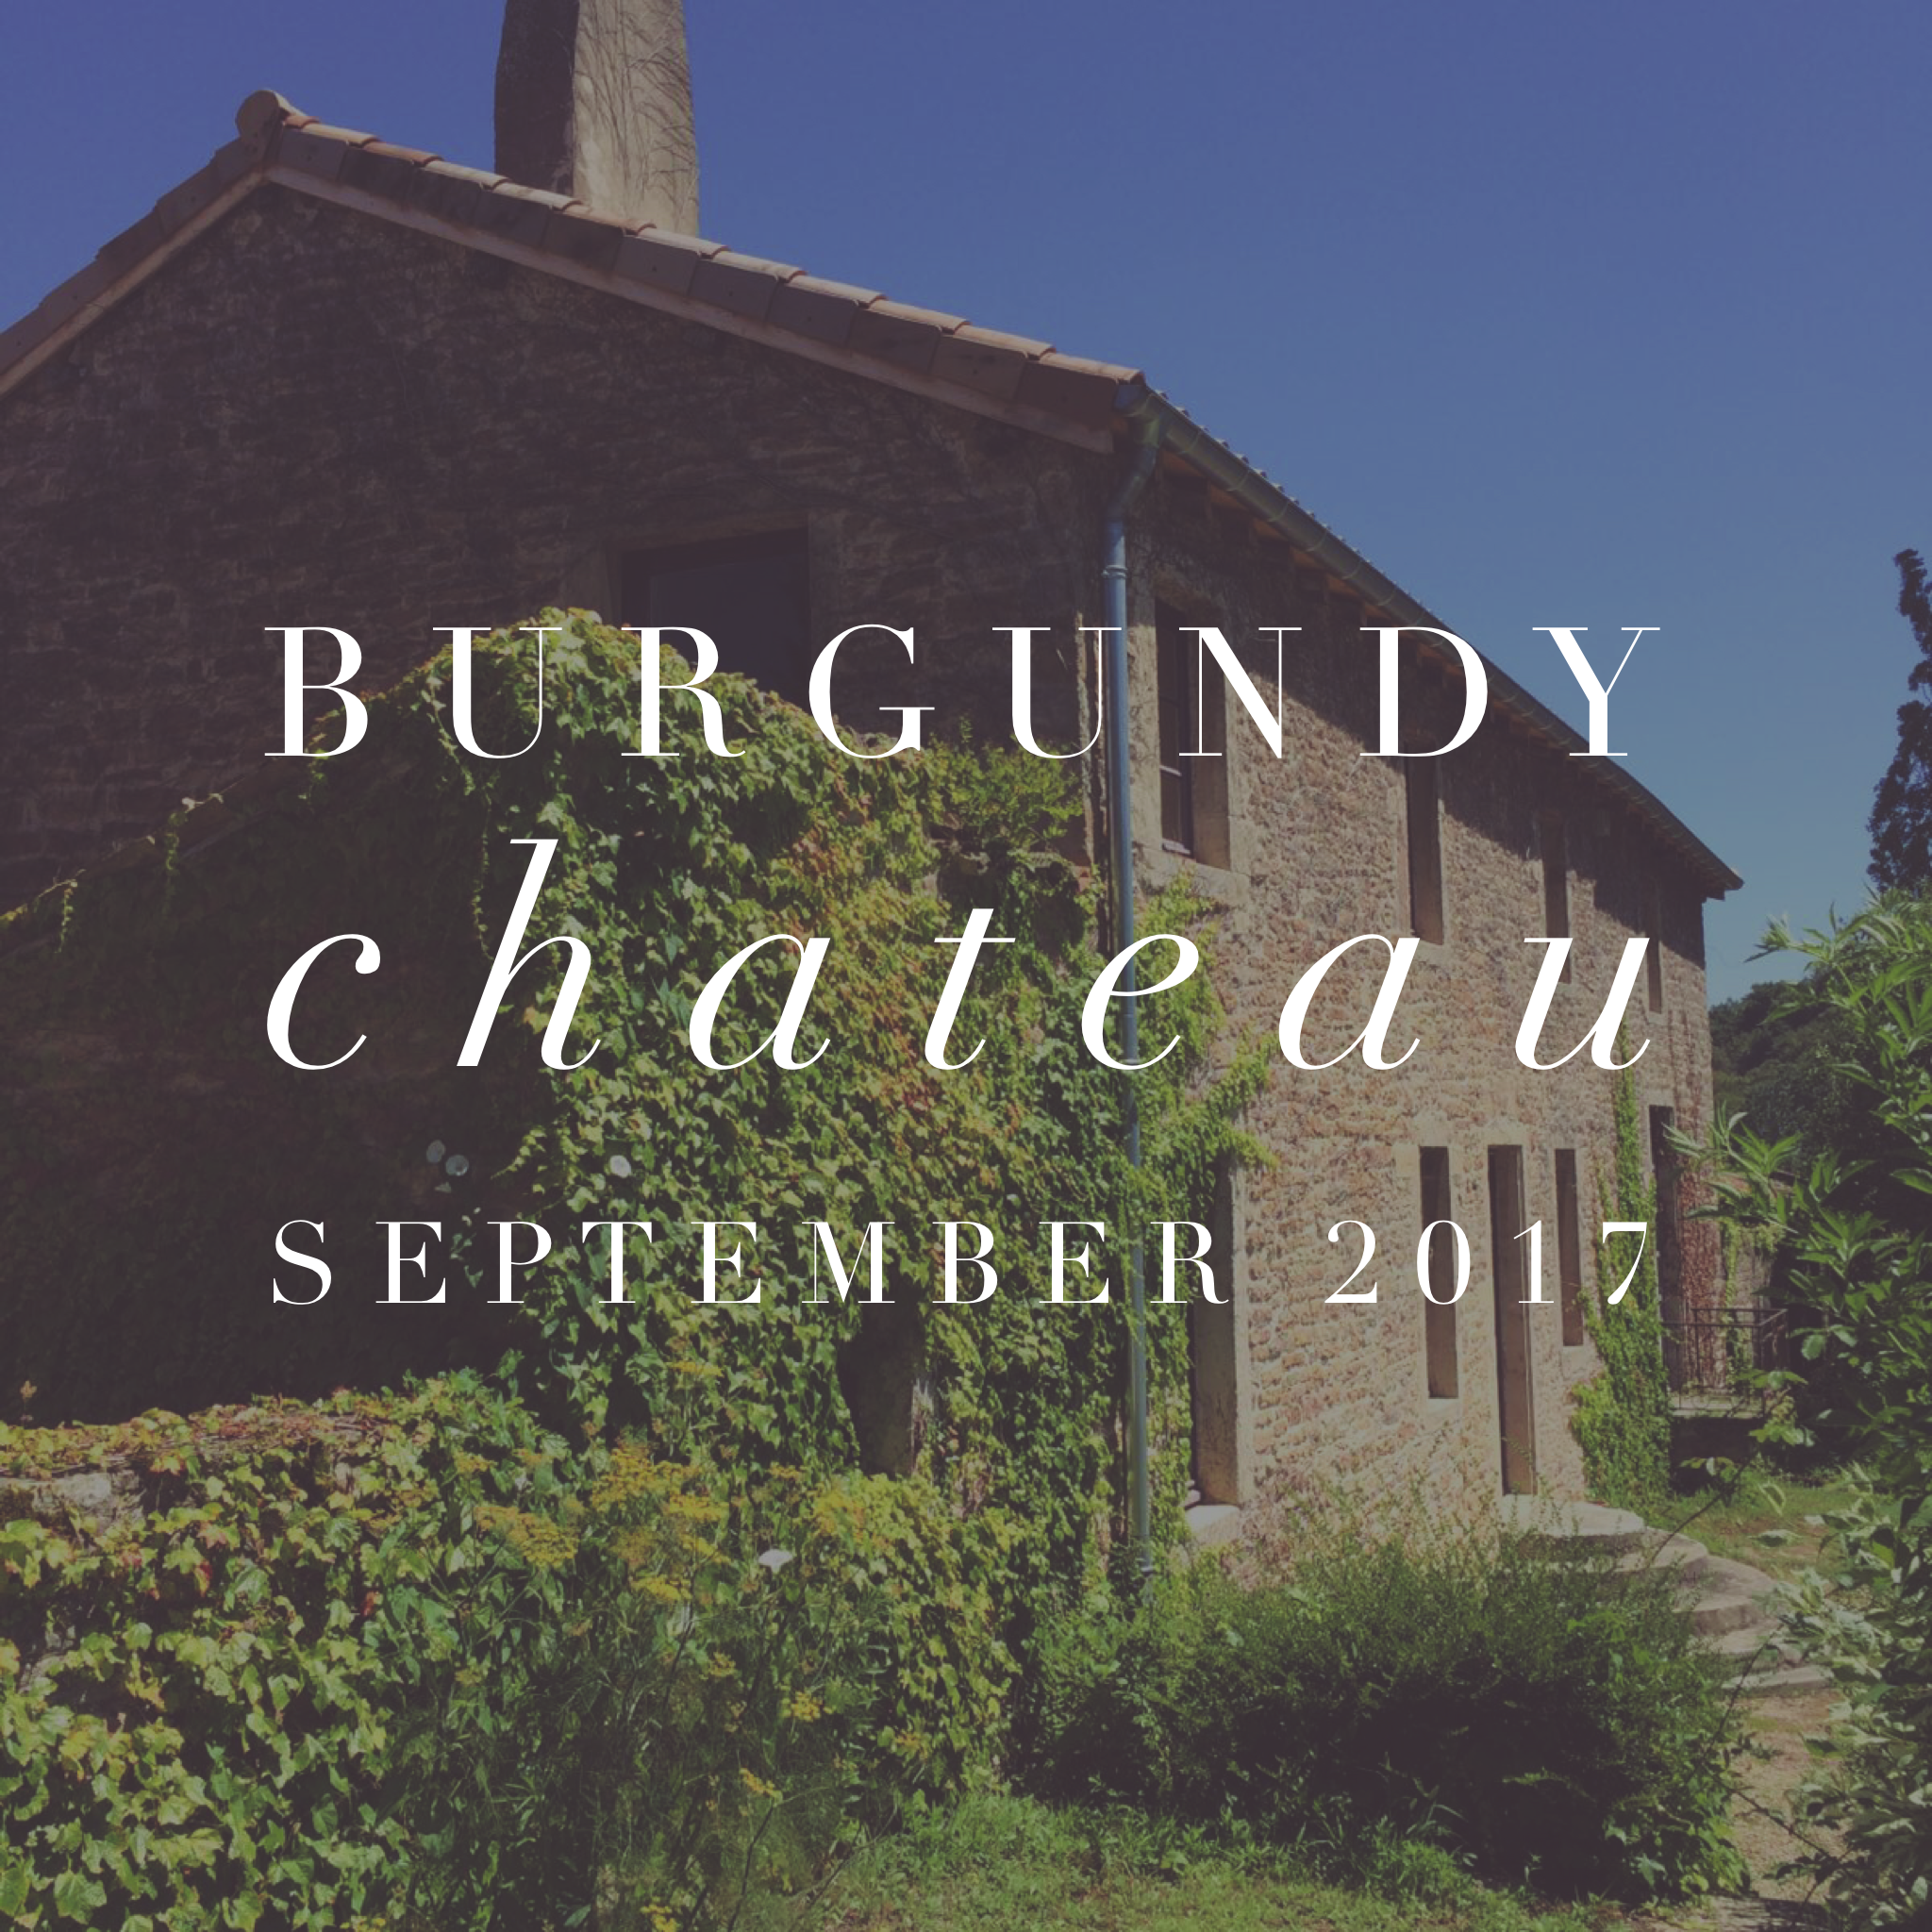 Burgundy Chateau vegan yoga retreat - Scotland, September 2017 - all-inclusive - Europe wellness holiday in east-central France (Lyon)